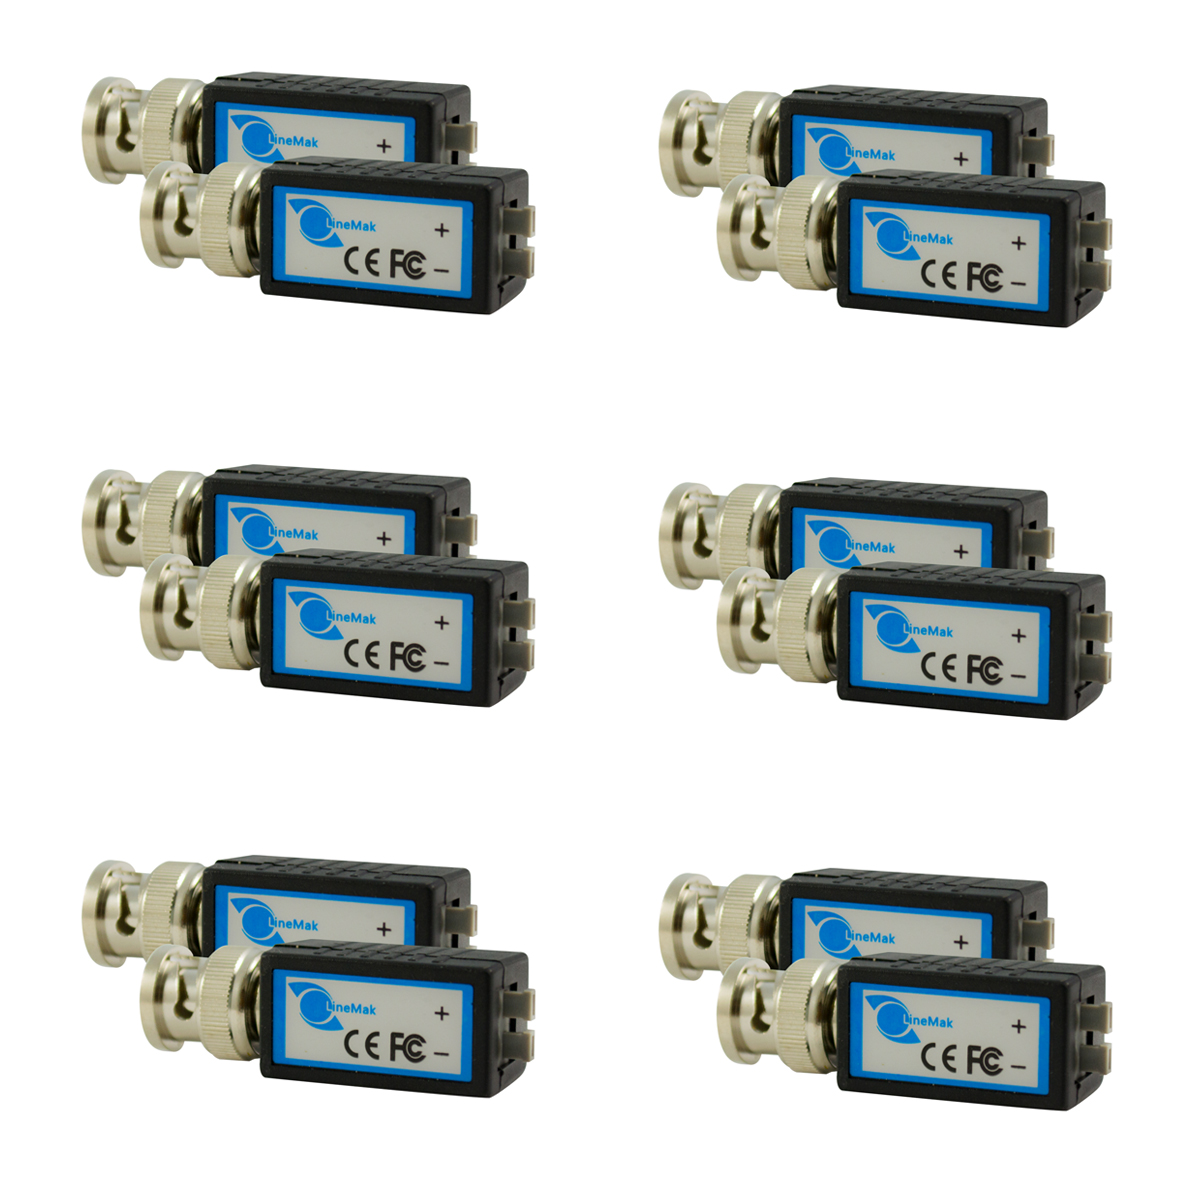 1 Channel passive Video balun 2000ft, Contains 6 Pairs (12 Pcs)